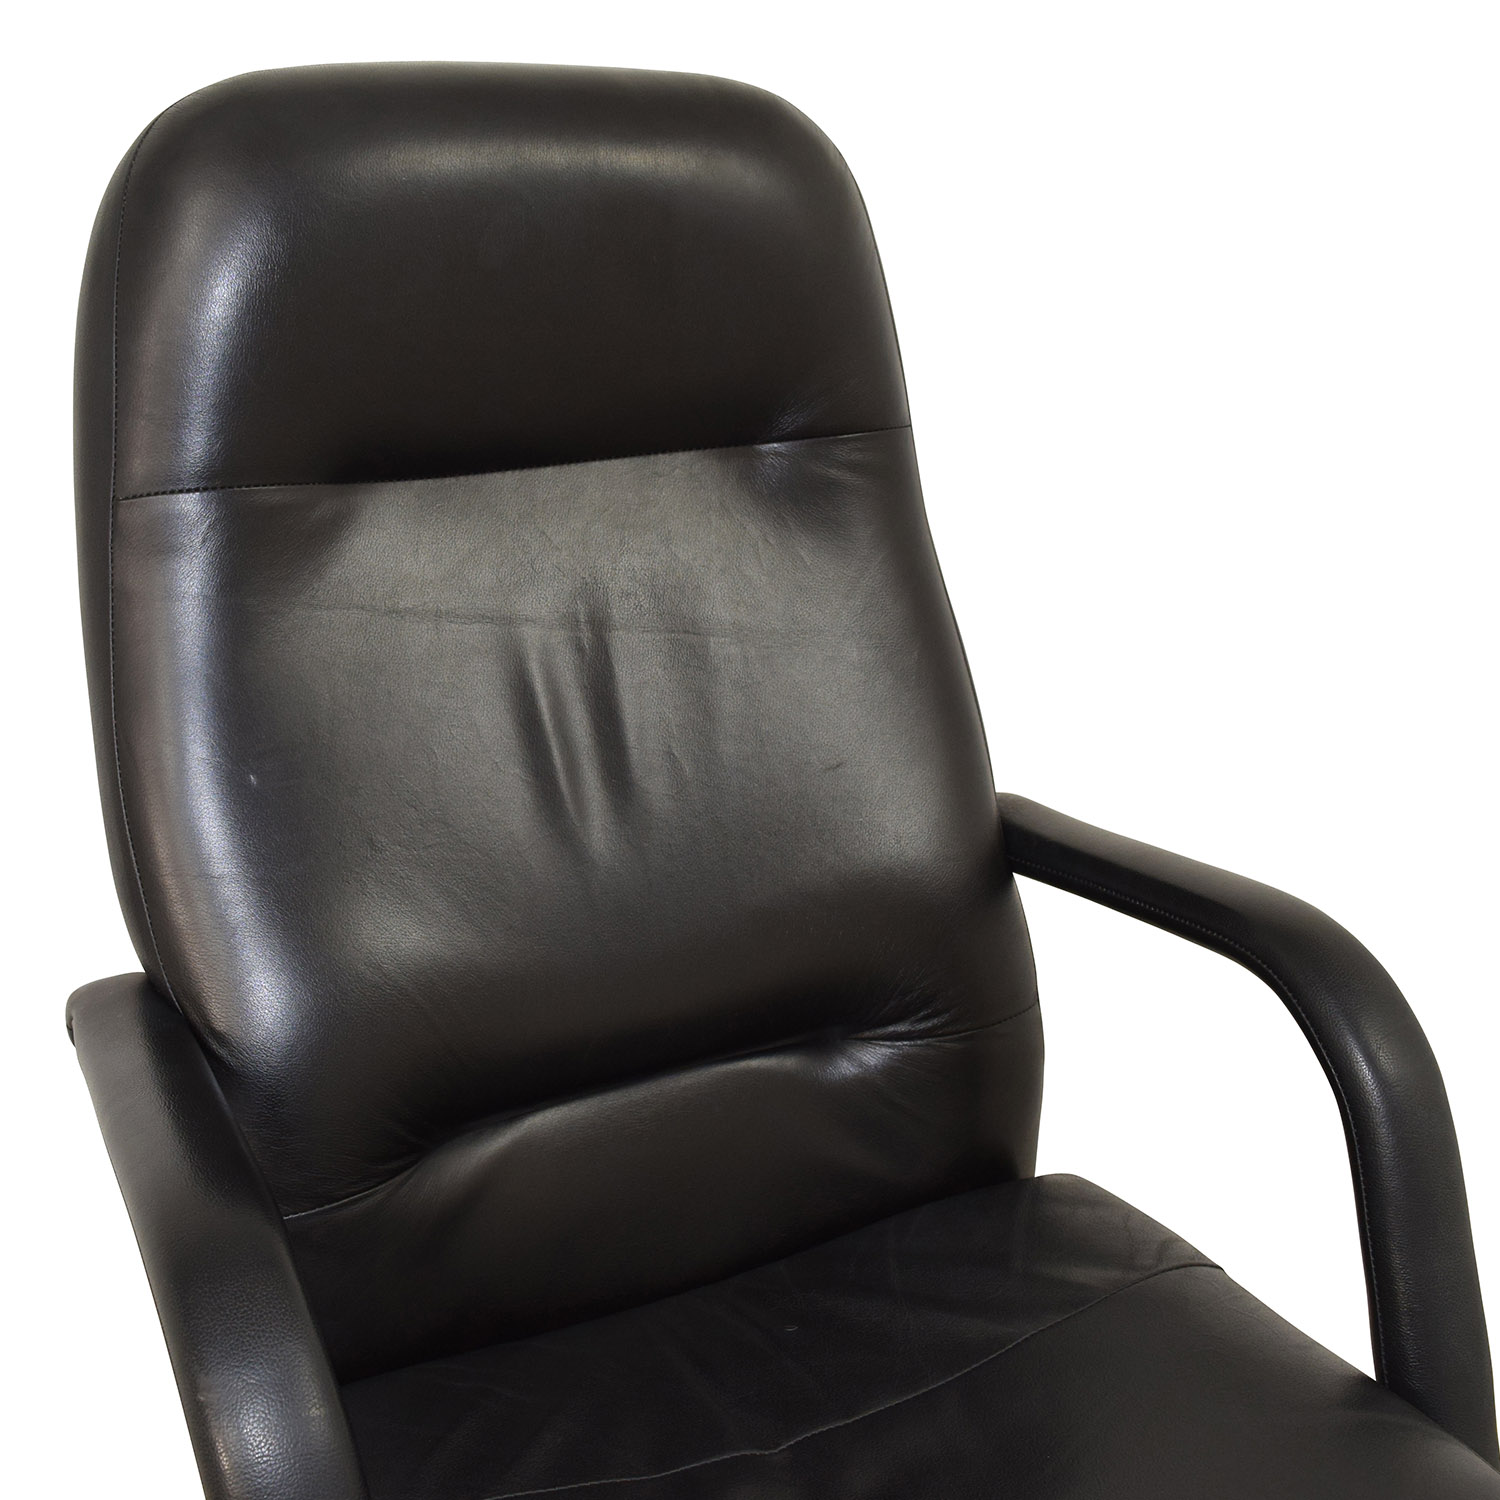 77 OFF  Black Leather Conference Room Chair  Chairs